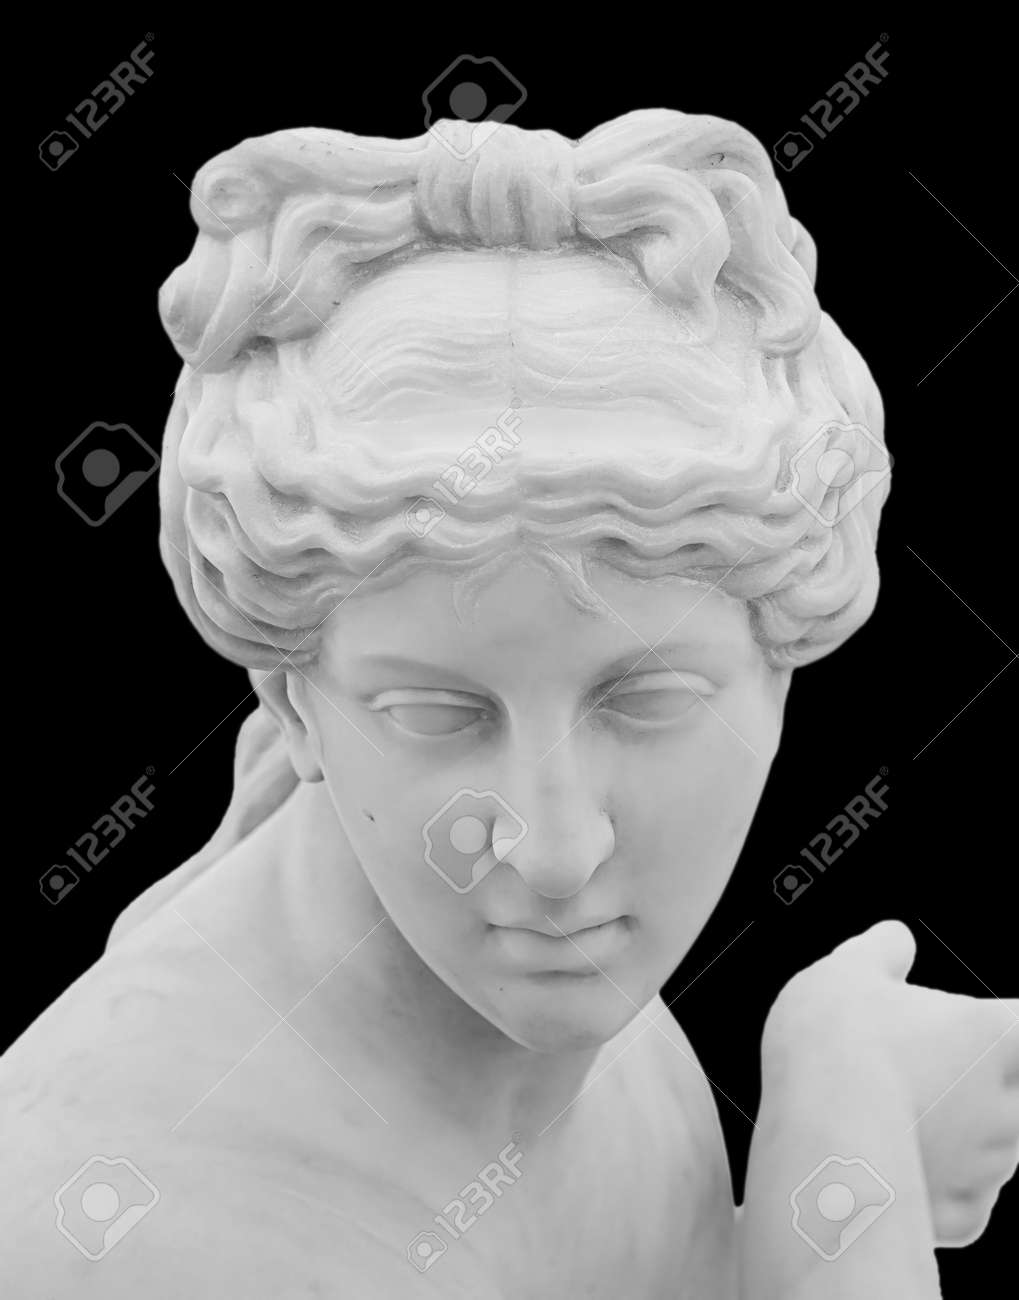 Ancient white marble sculpture head of young woman. Statue of sensual renaissance art era woman antique style. Face isolated on black background - 169669226